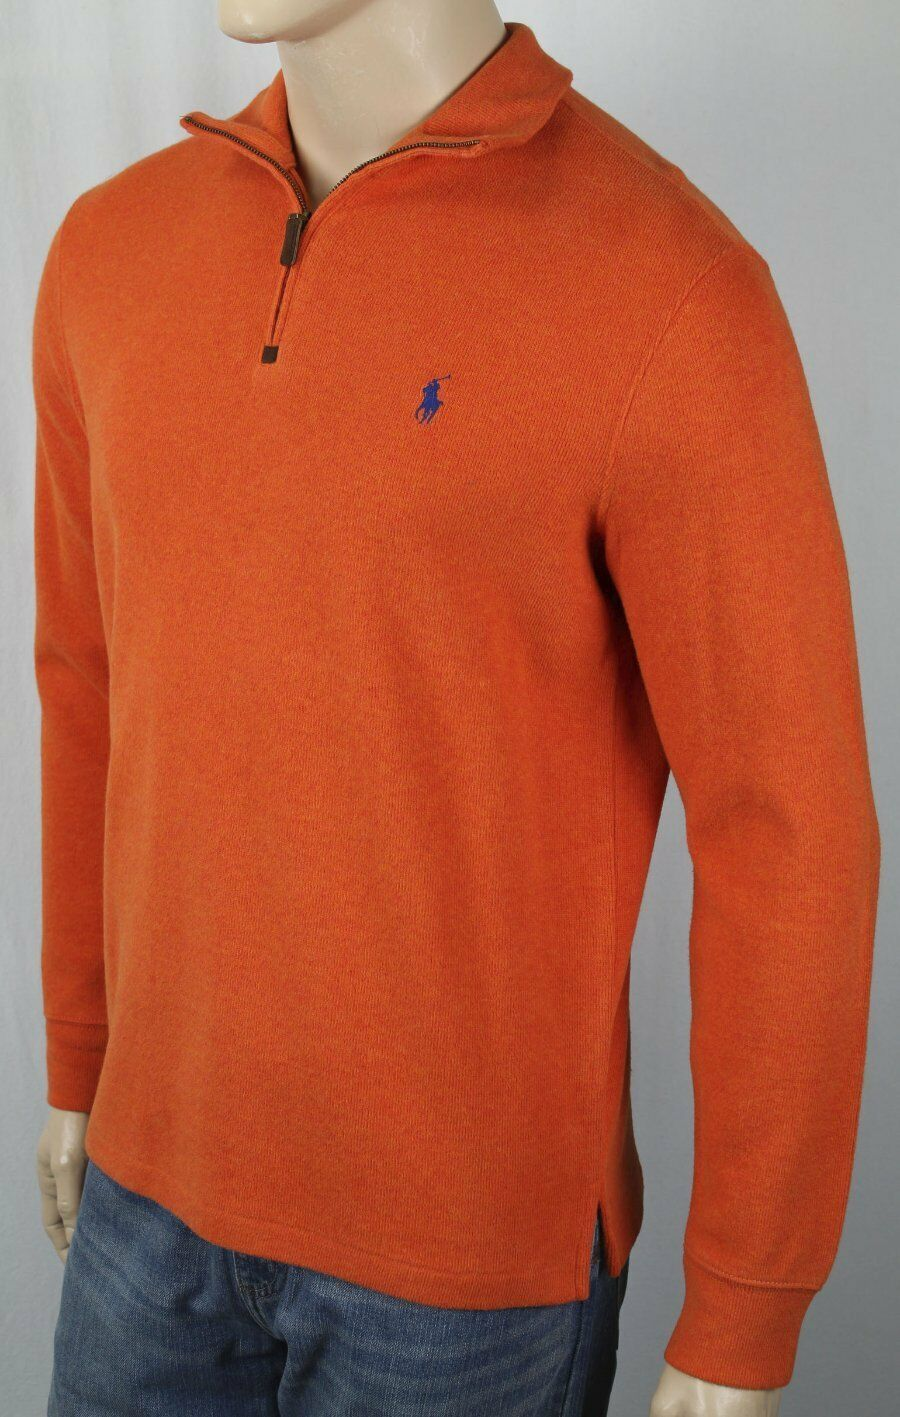 Polo Ralph Lauren orange 1 2 Half Zip Sweater bluee Pony NWT